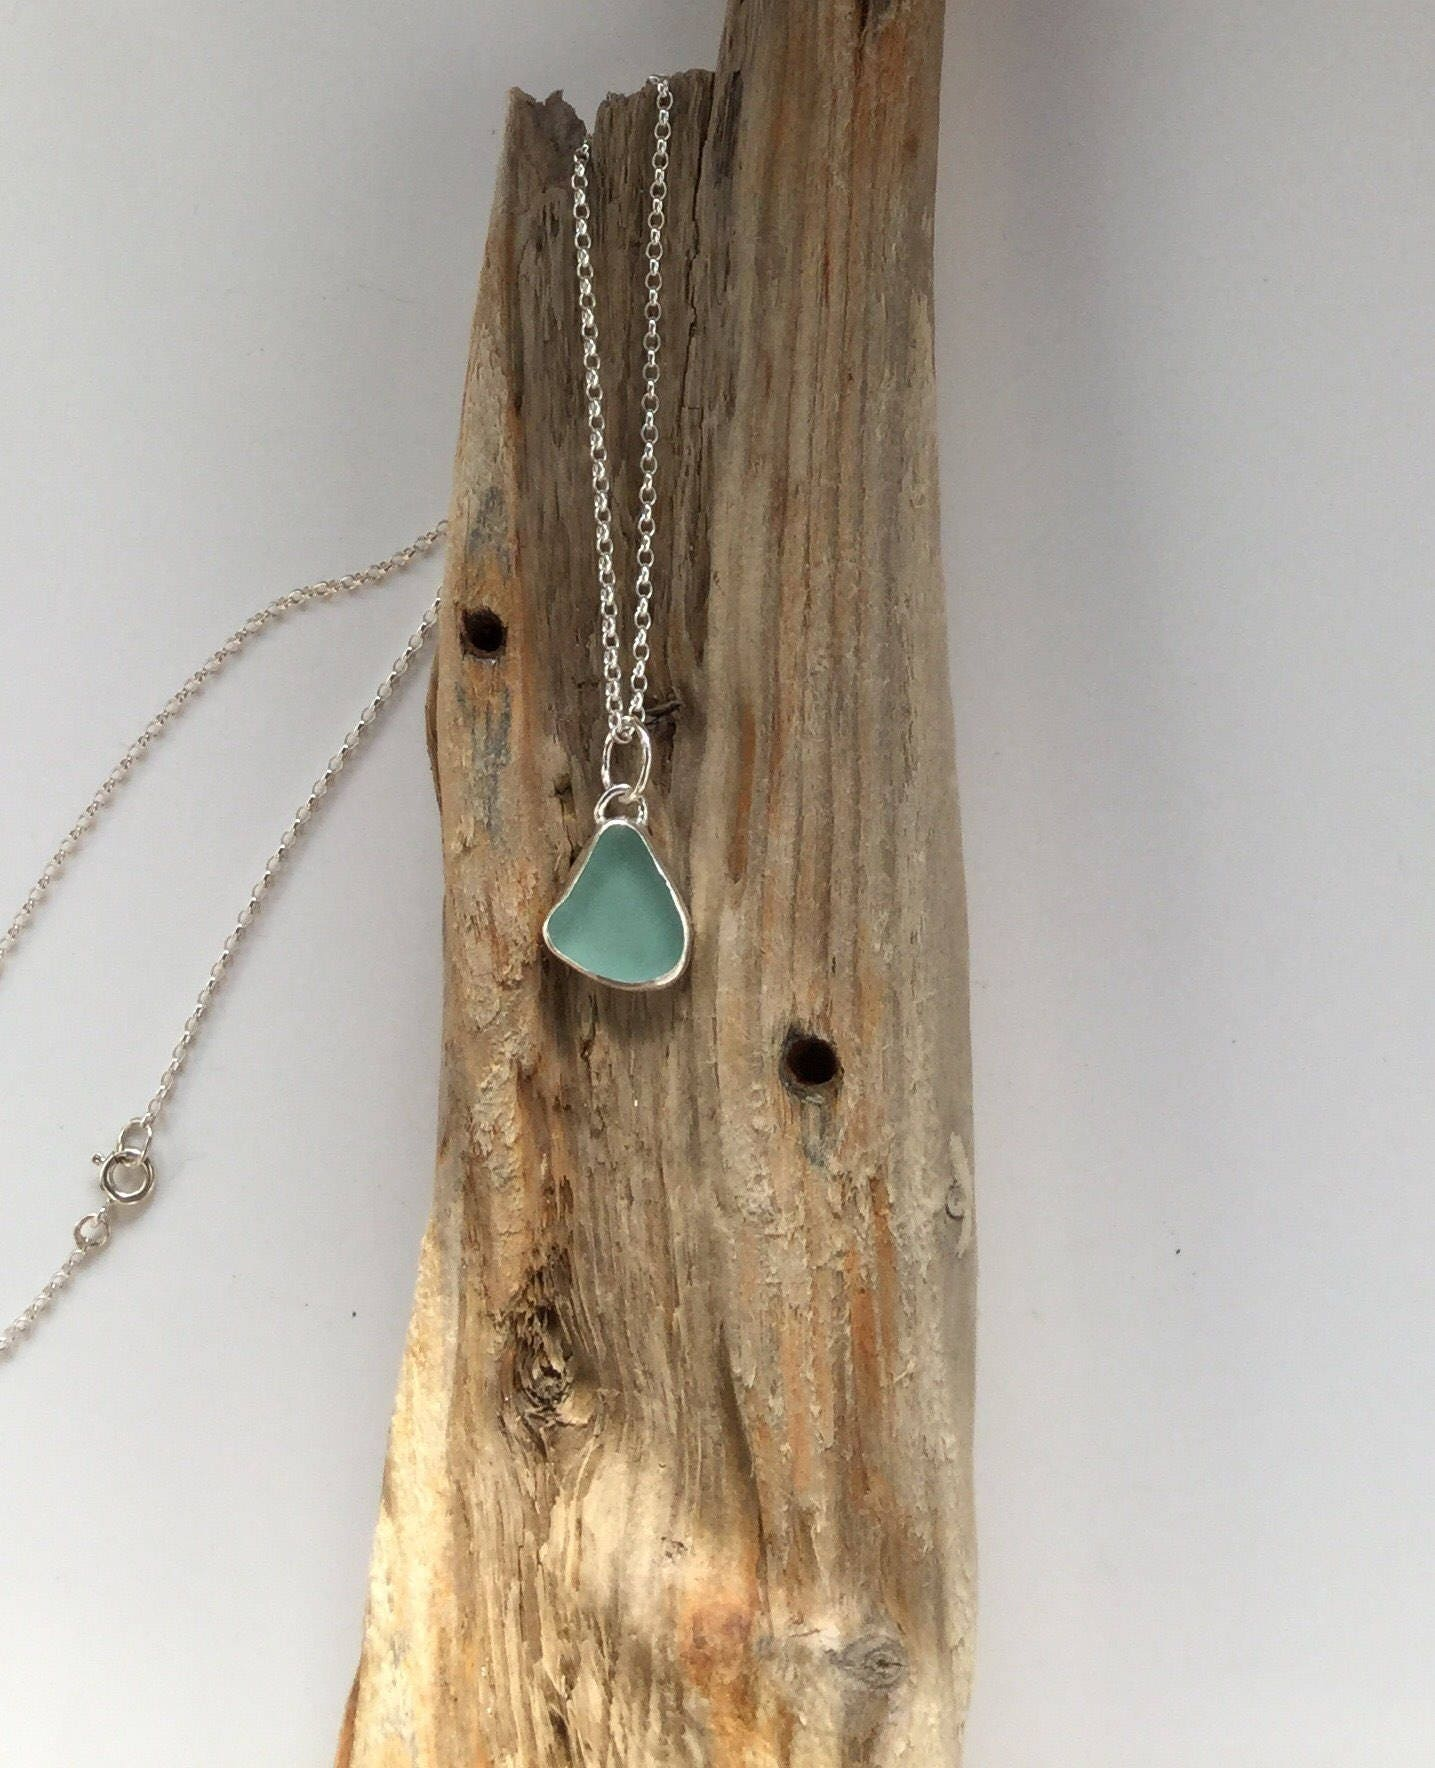 Turquoise Seaglass Necklace Seaglass Necklace Sea Glass Jewelry Turquoise Seaglass Pendant Sea Glass Pendant